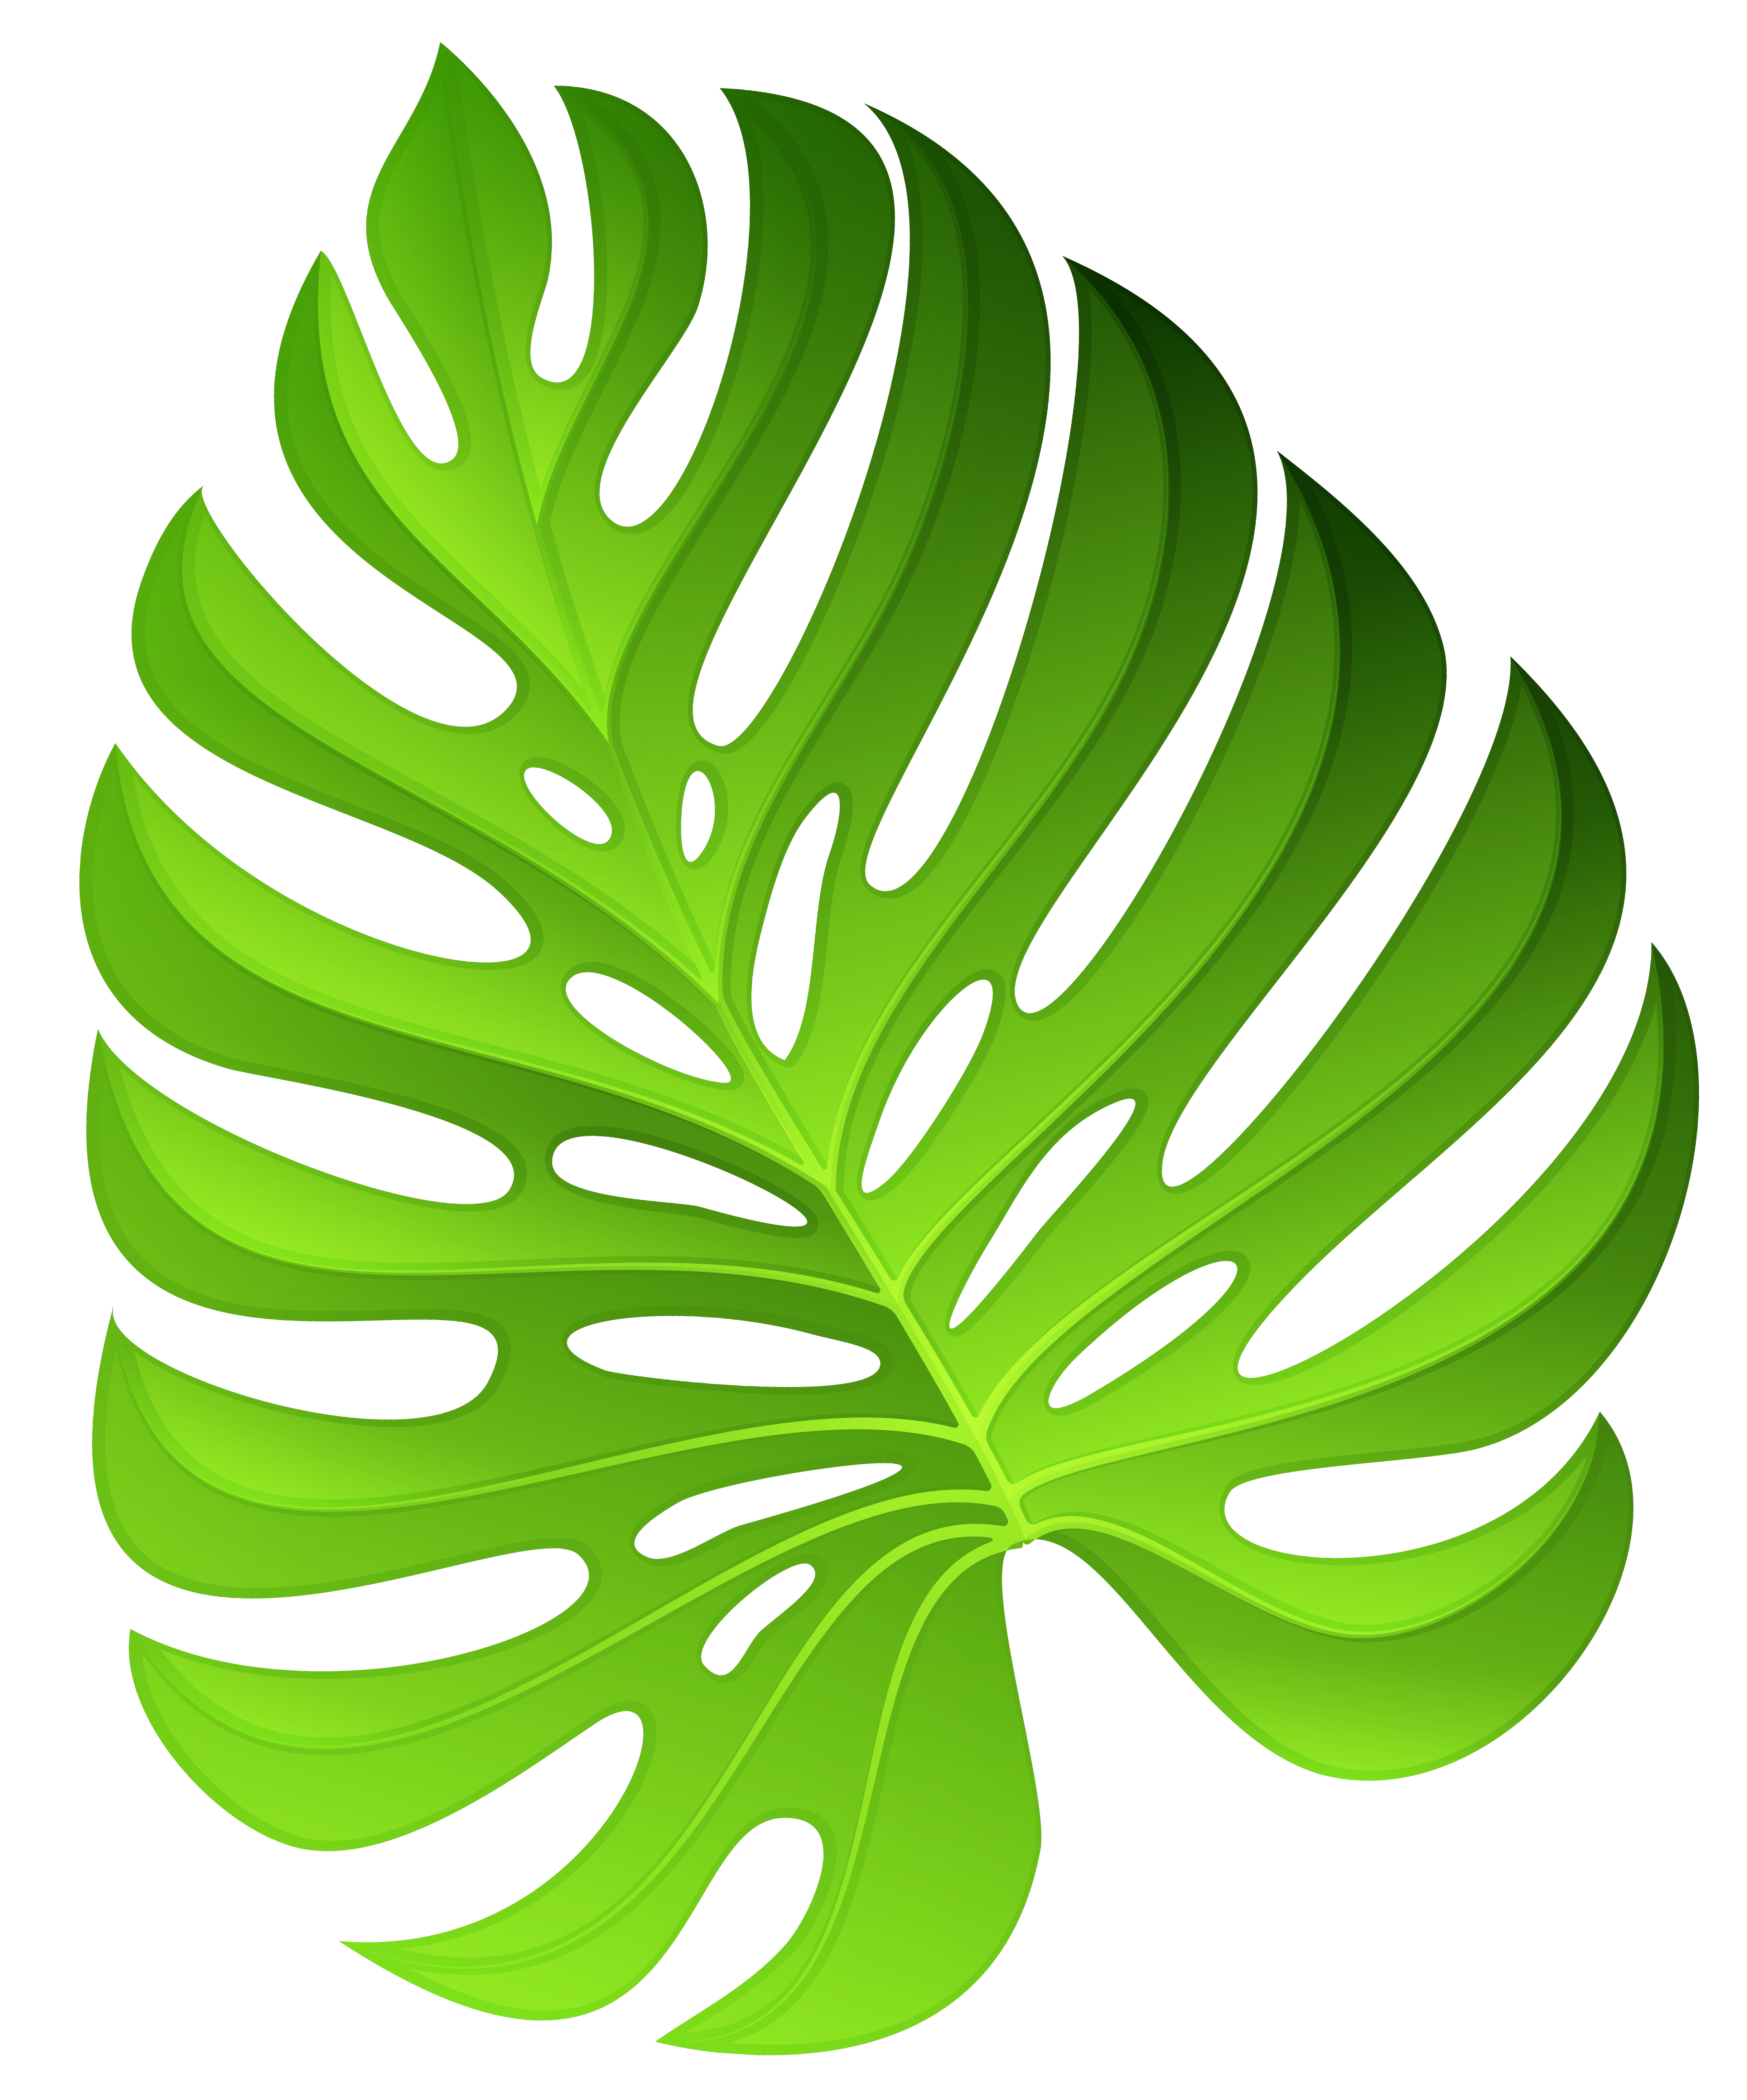 Plant clipart green plant. Exotic decoration png image